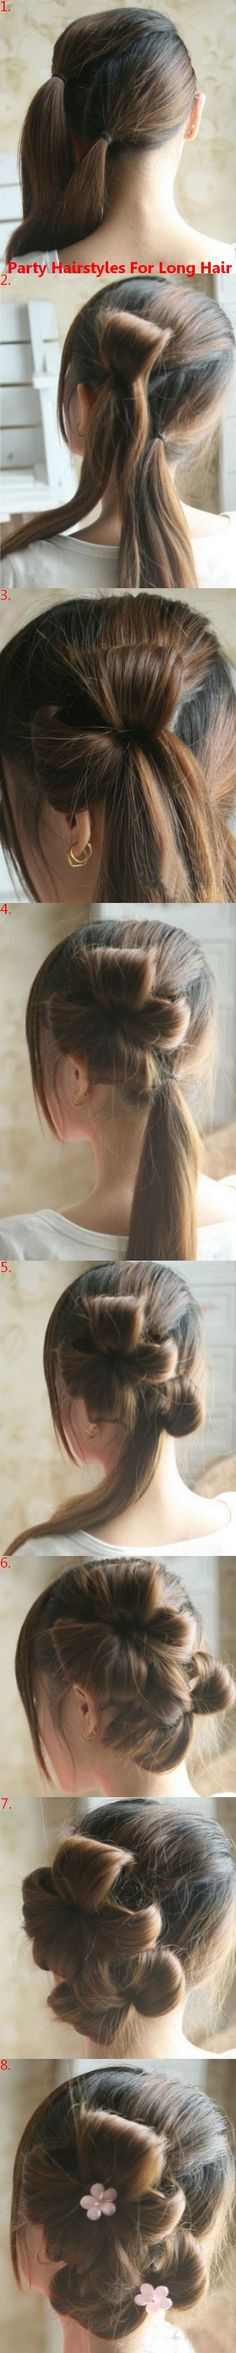 Party hairstyles for long hair party hairstyles for long hair, parties, parti hairstyl, flower hairstyl, beauti, hair style, hair bow, up do for long hair, hair idea